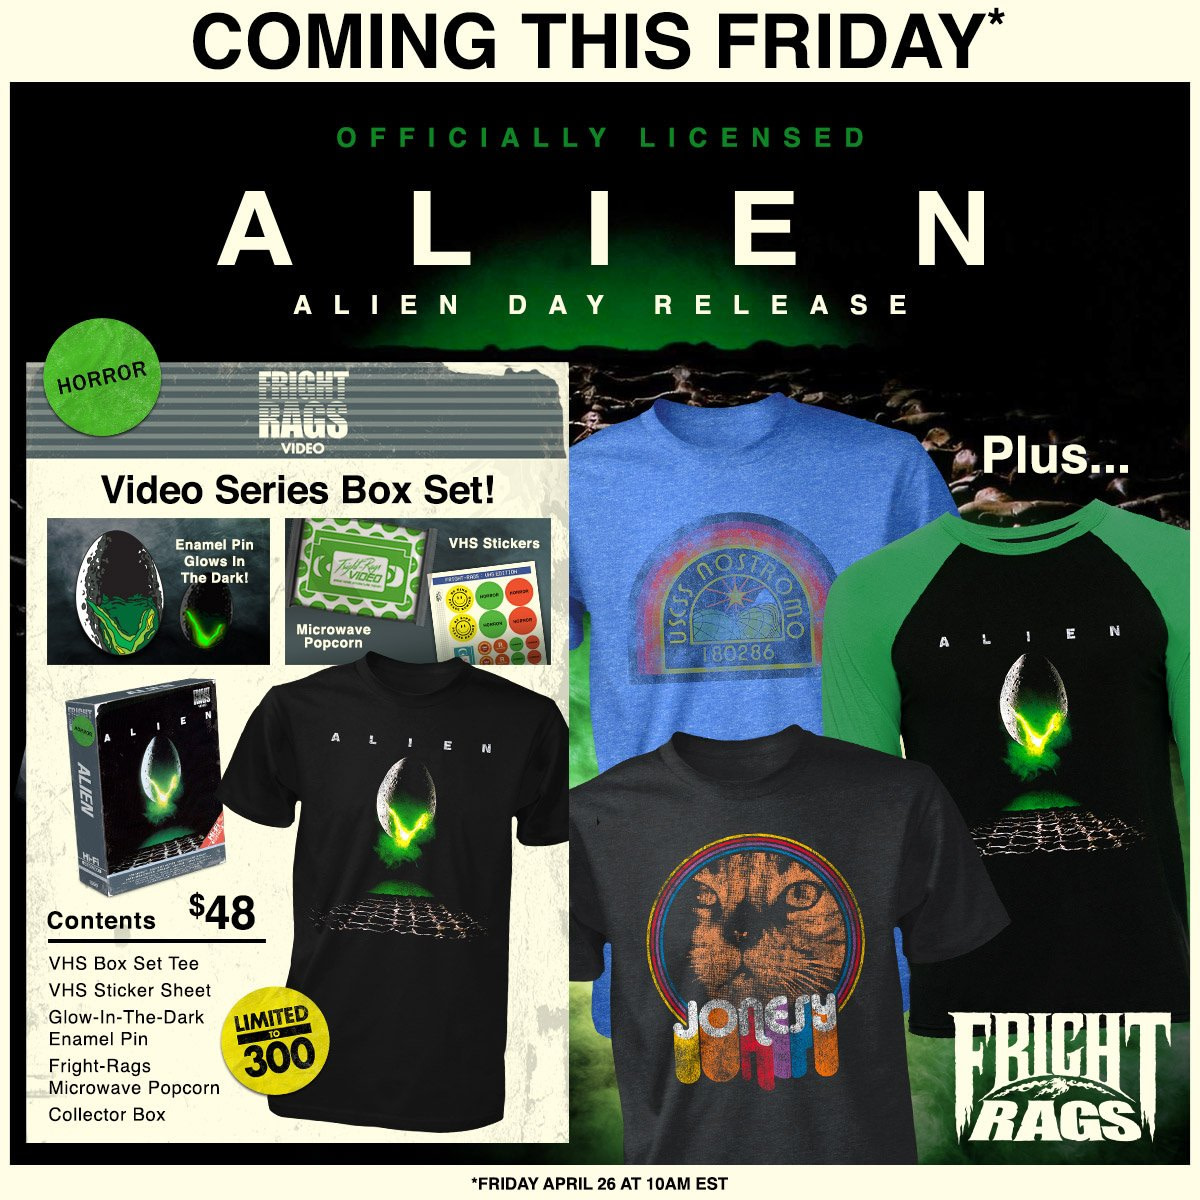 Happy Alien Day! Here are Some of the Things You Can Buy Today to Celebrate!